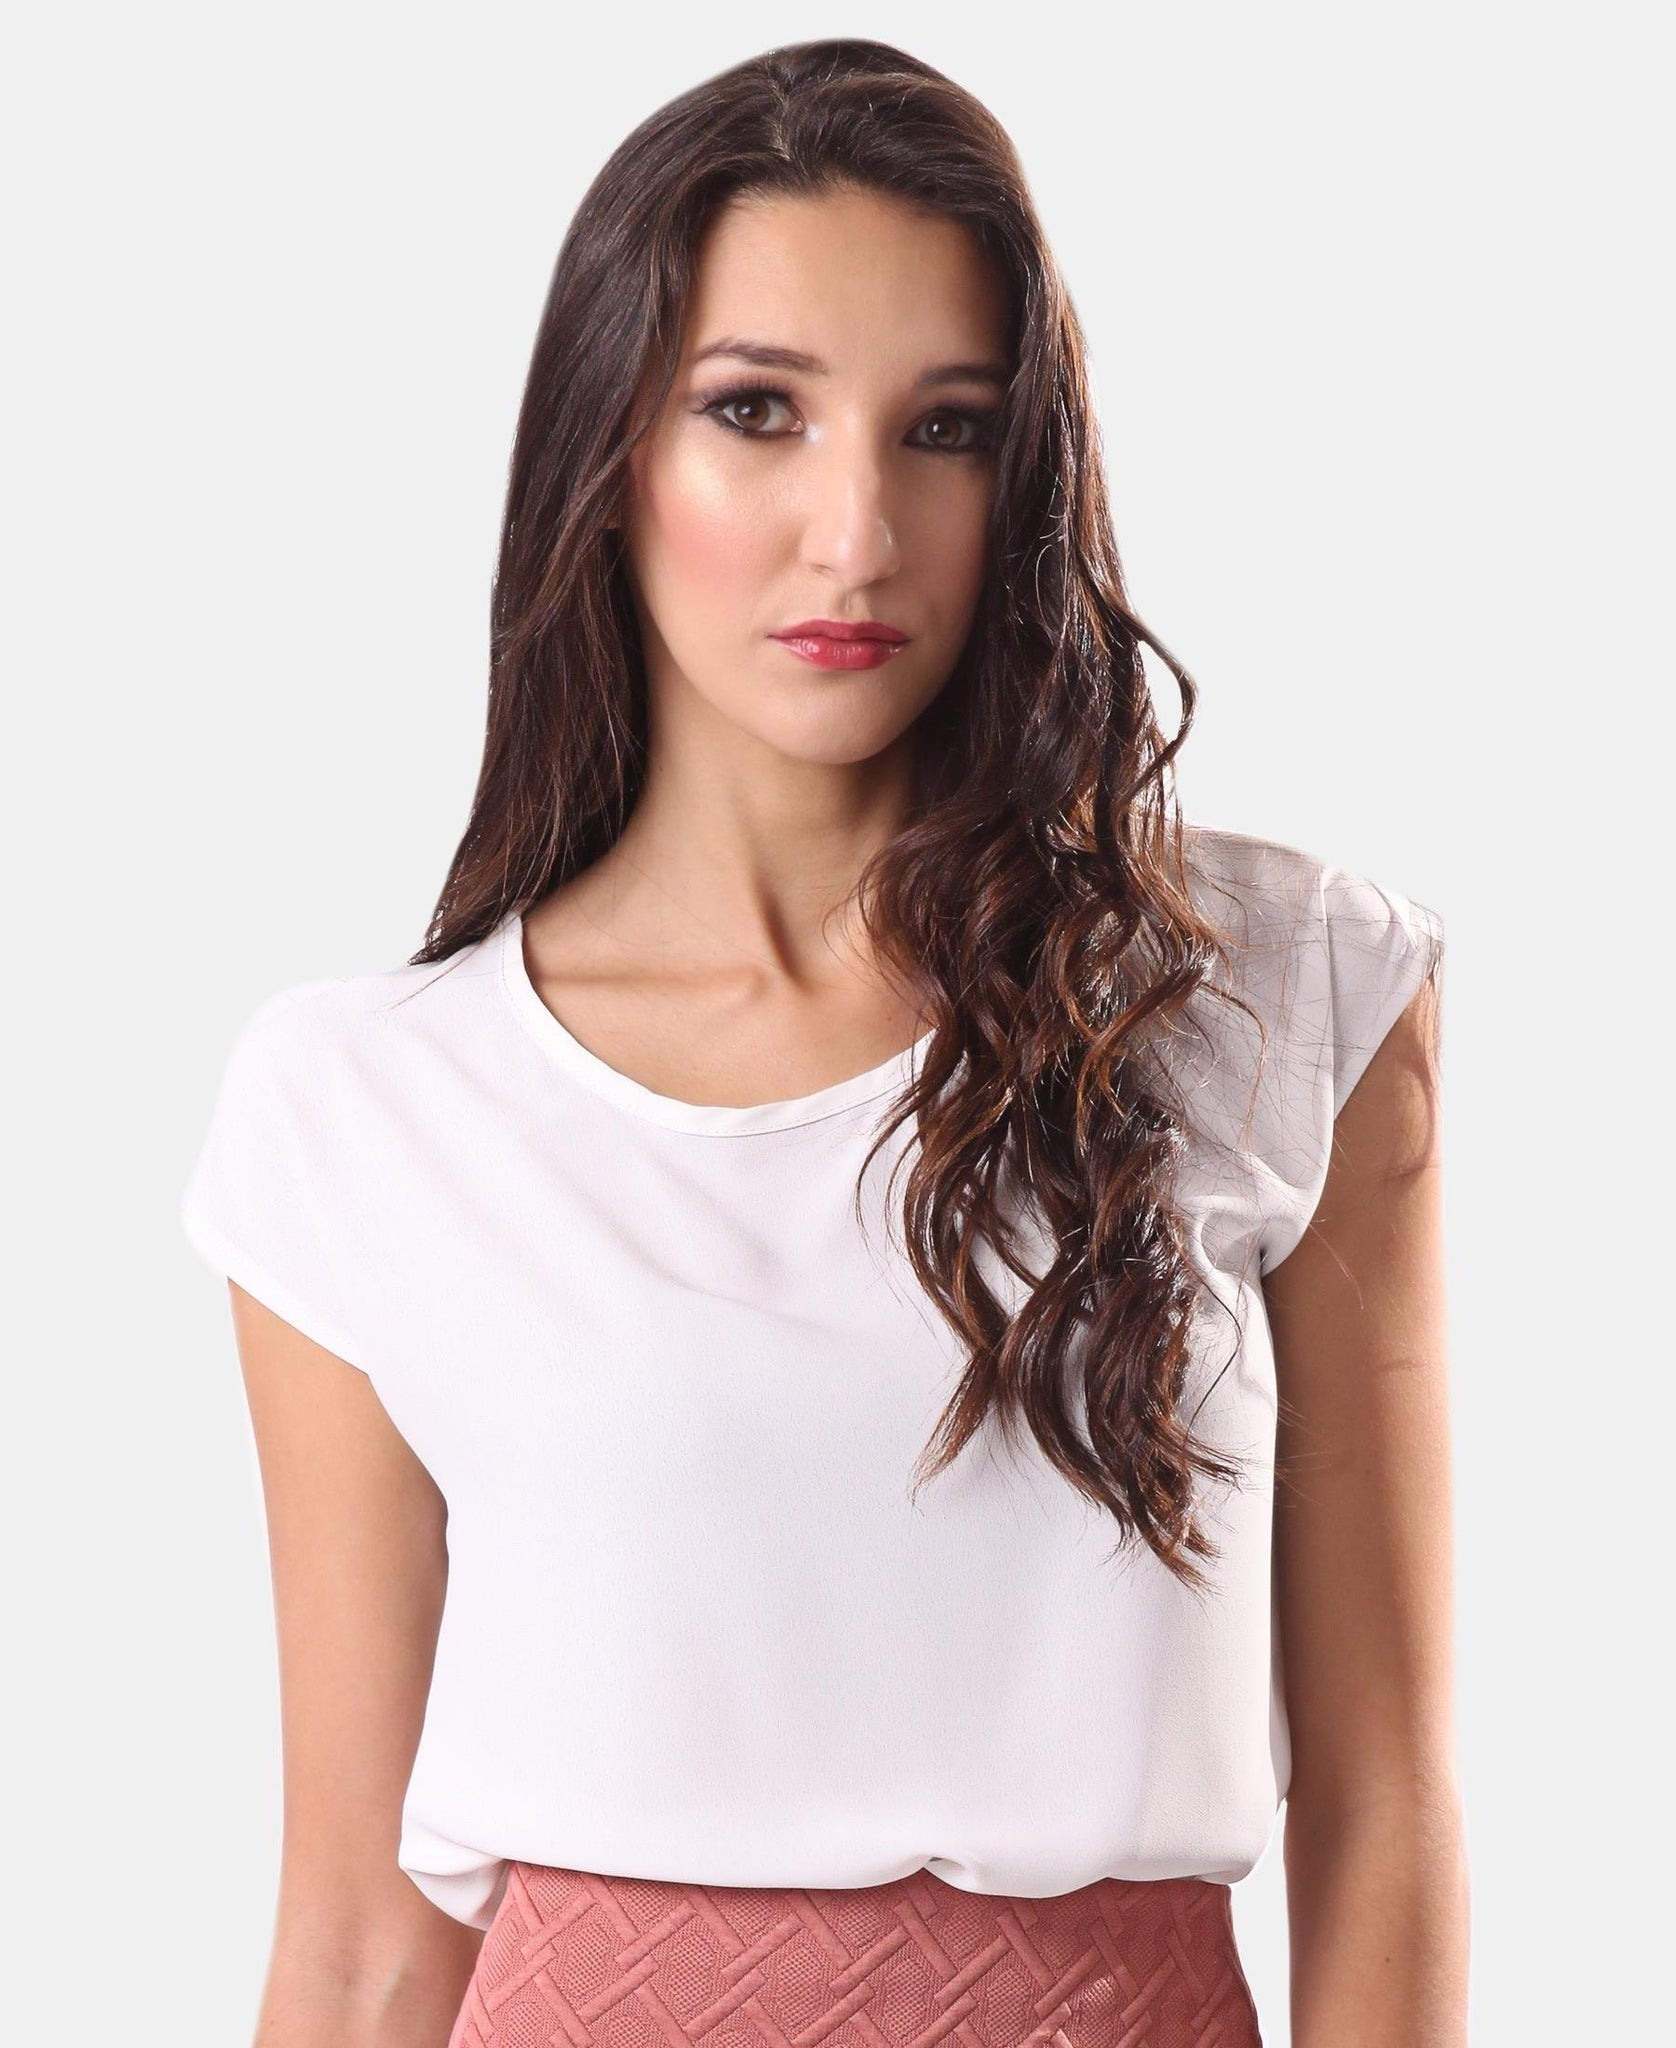 Cap Sleeve Chiffon Top - White